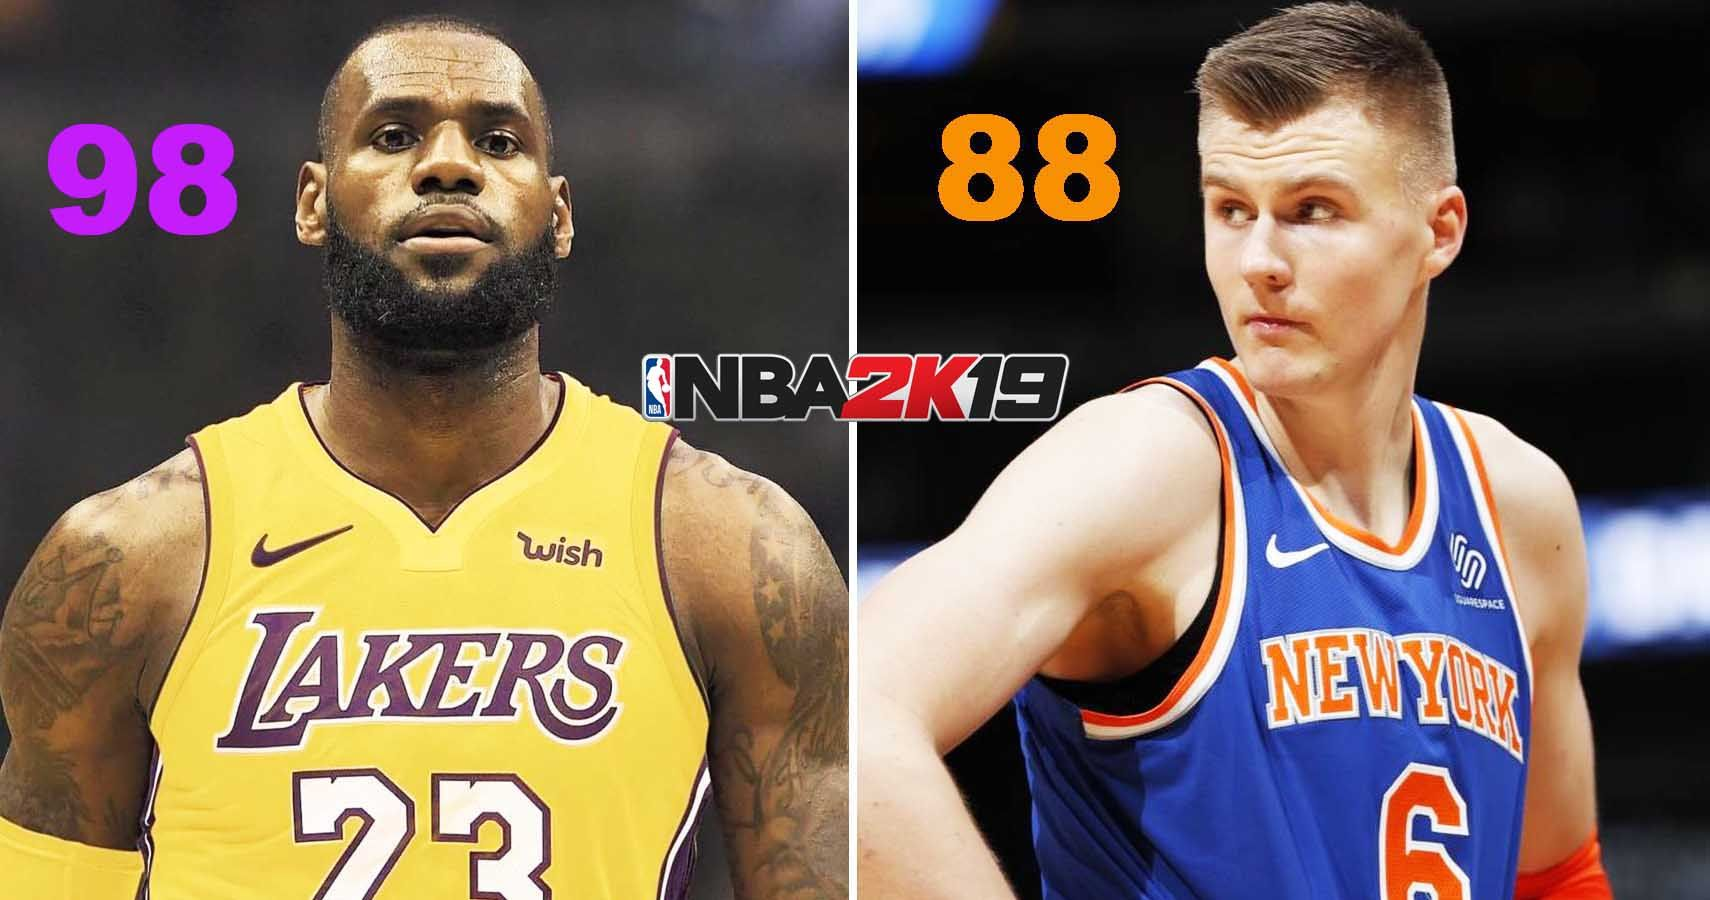 20 NBA 2K19 Ratings That Make Absolutely No Sense (And What They